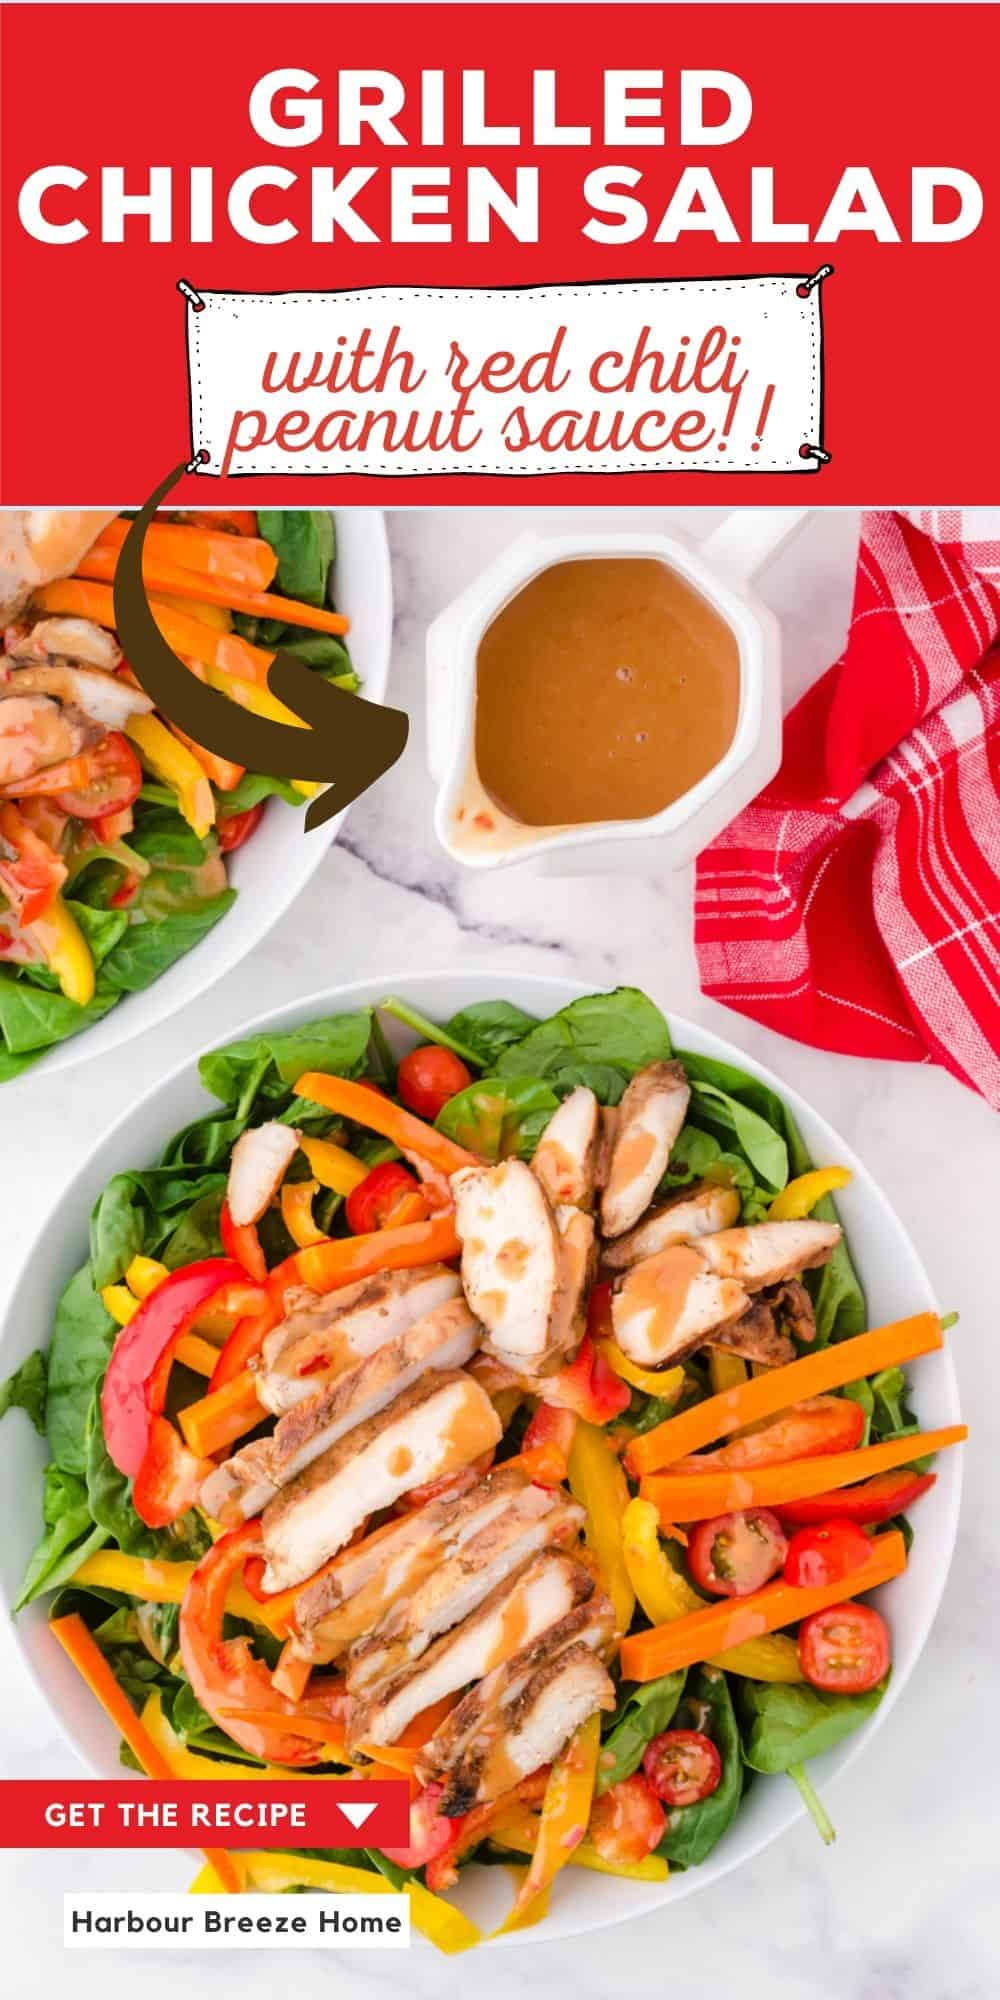 Grilled Chicken Salad with red chili peanut sauce